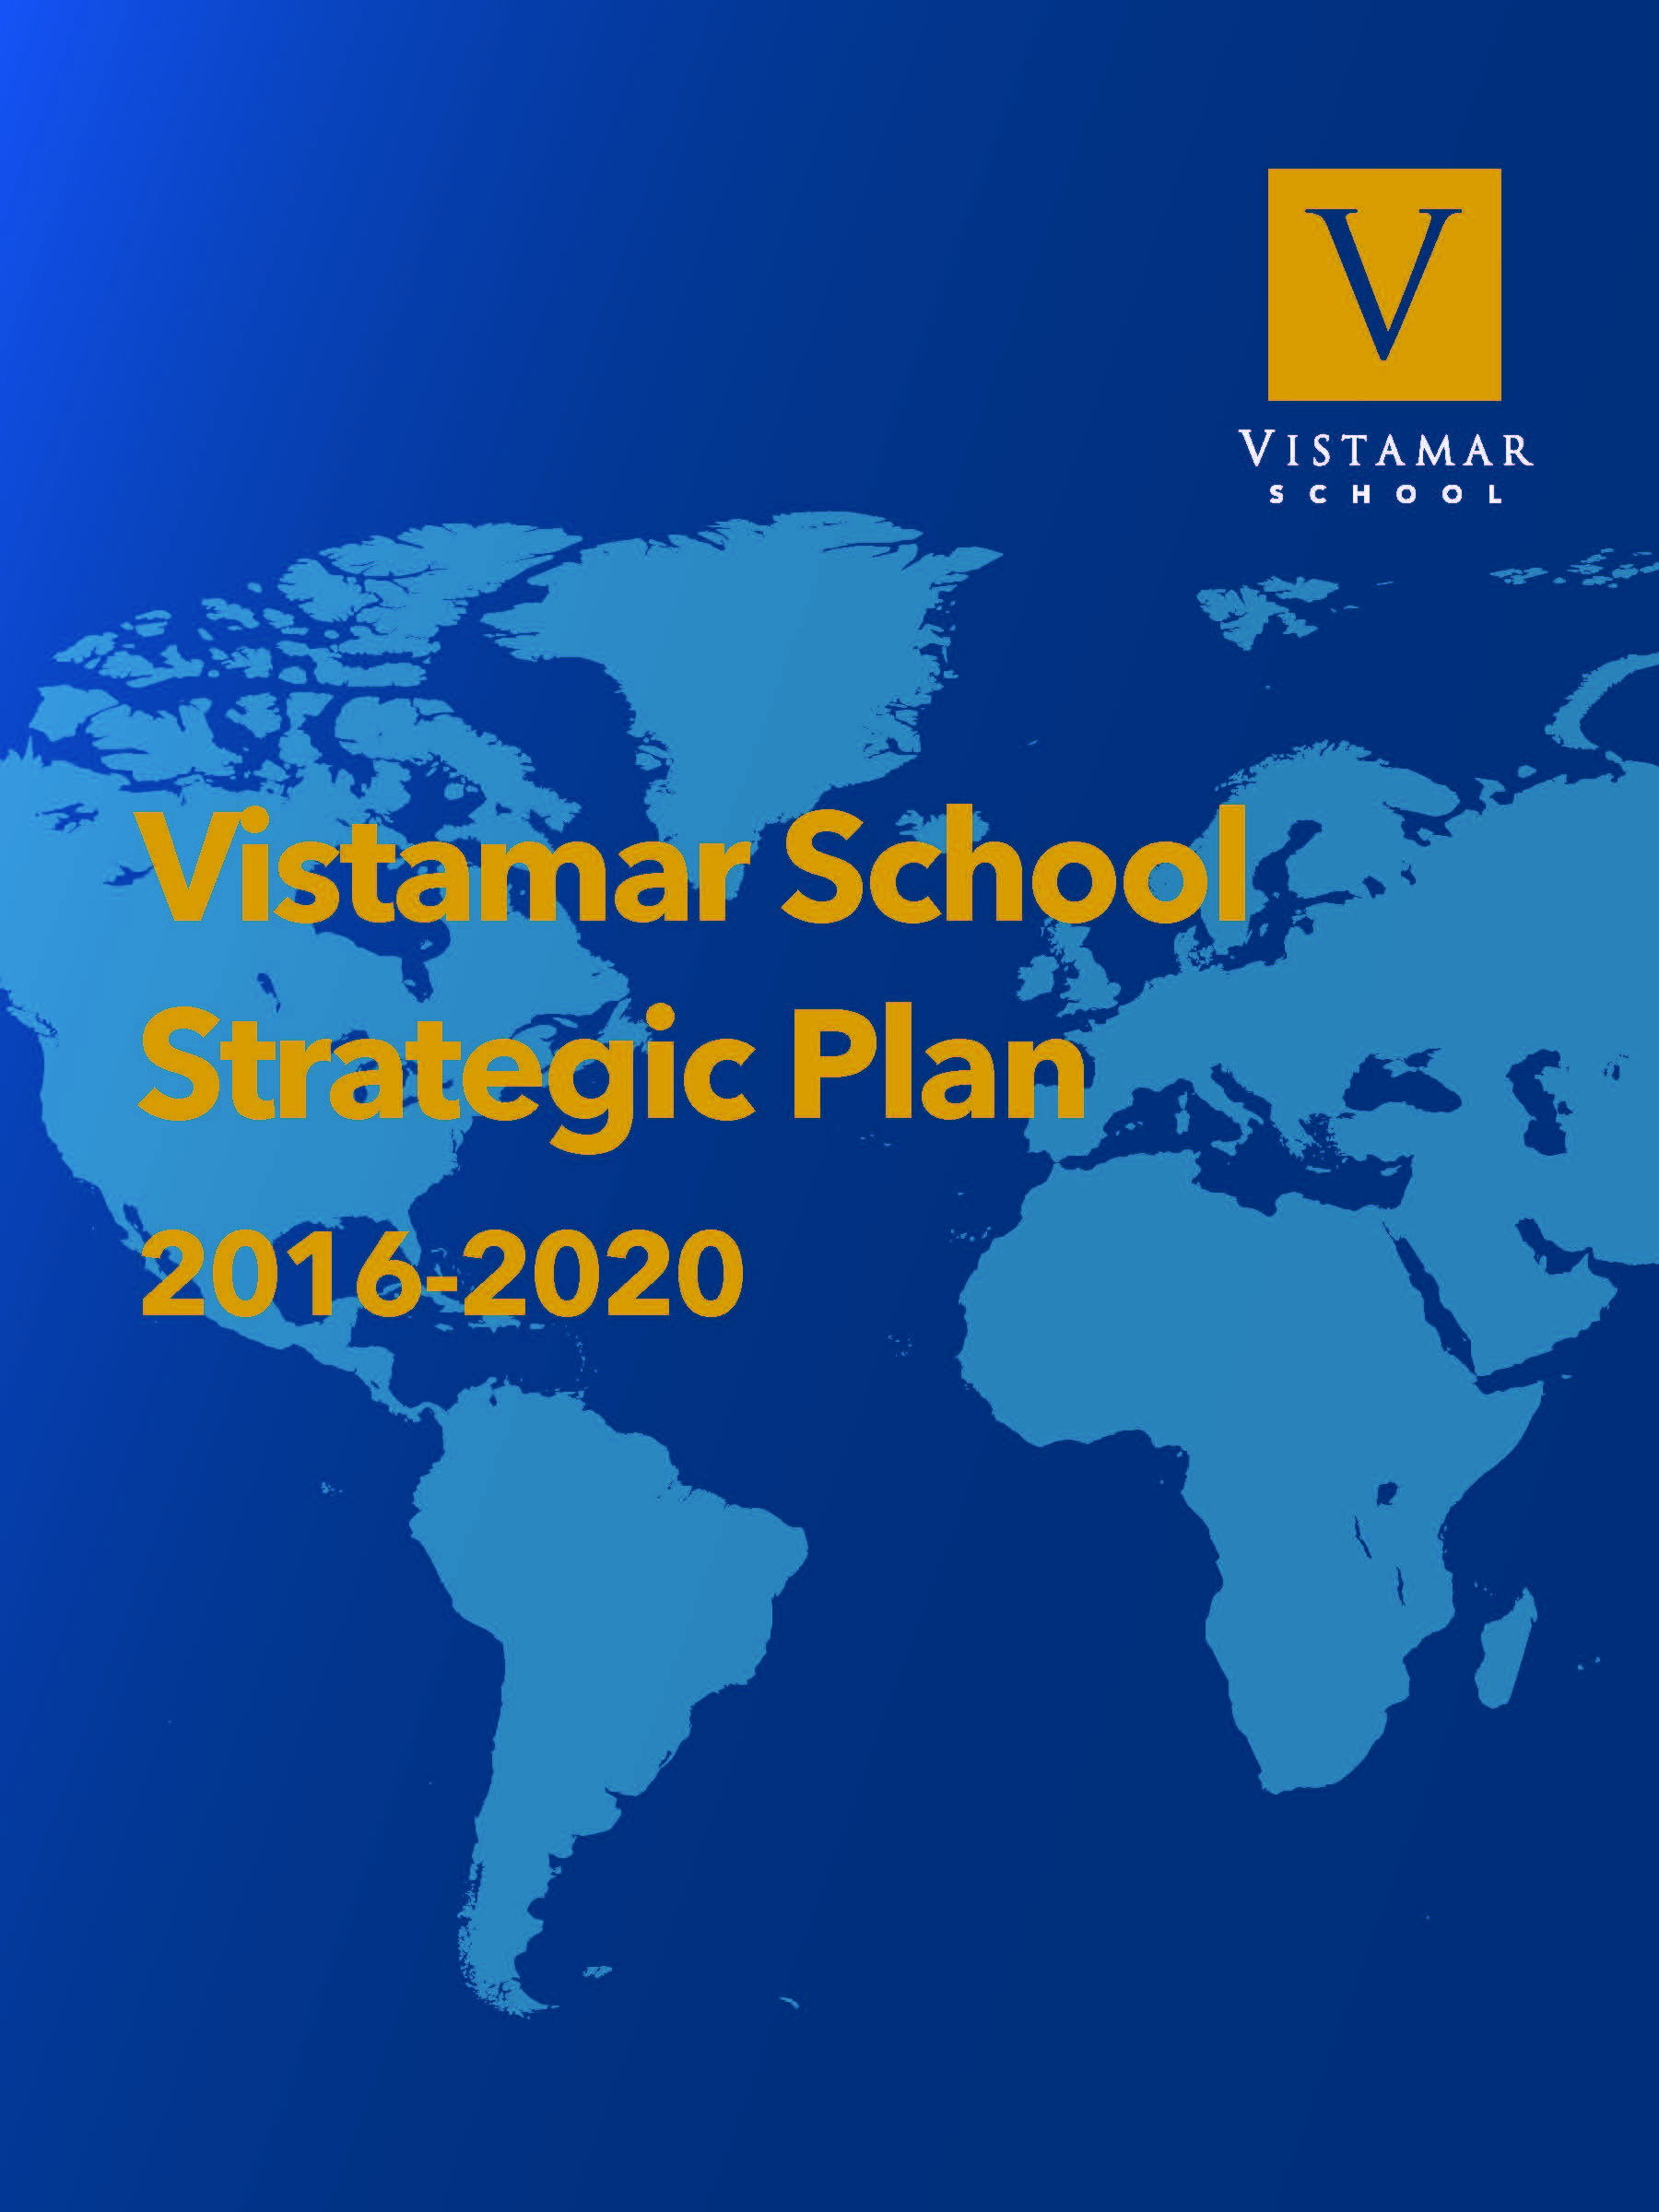 Lausd School Calendar 2016-2020 Strategic Plan | Vistamar School